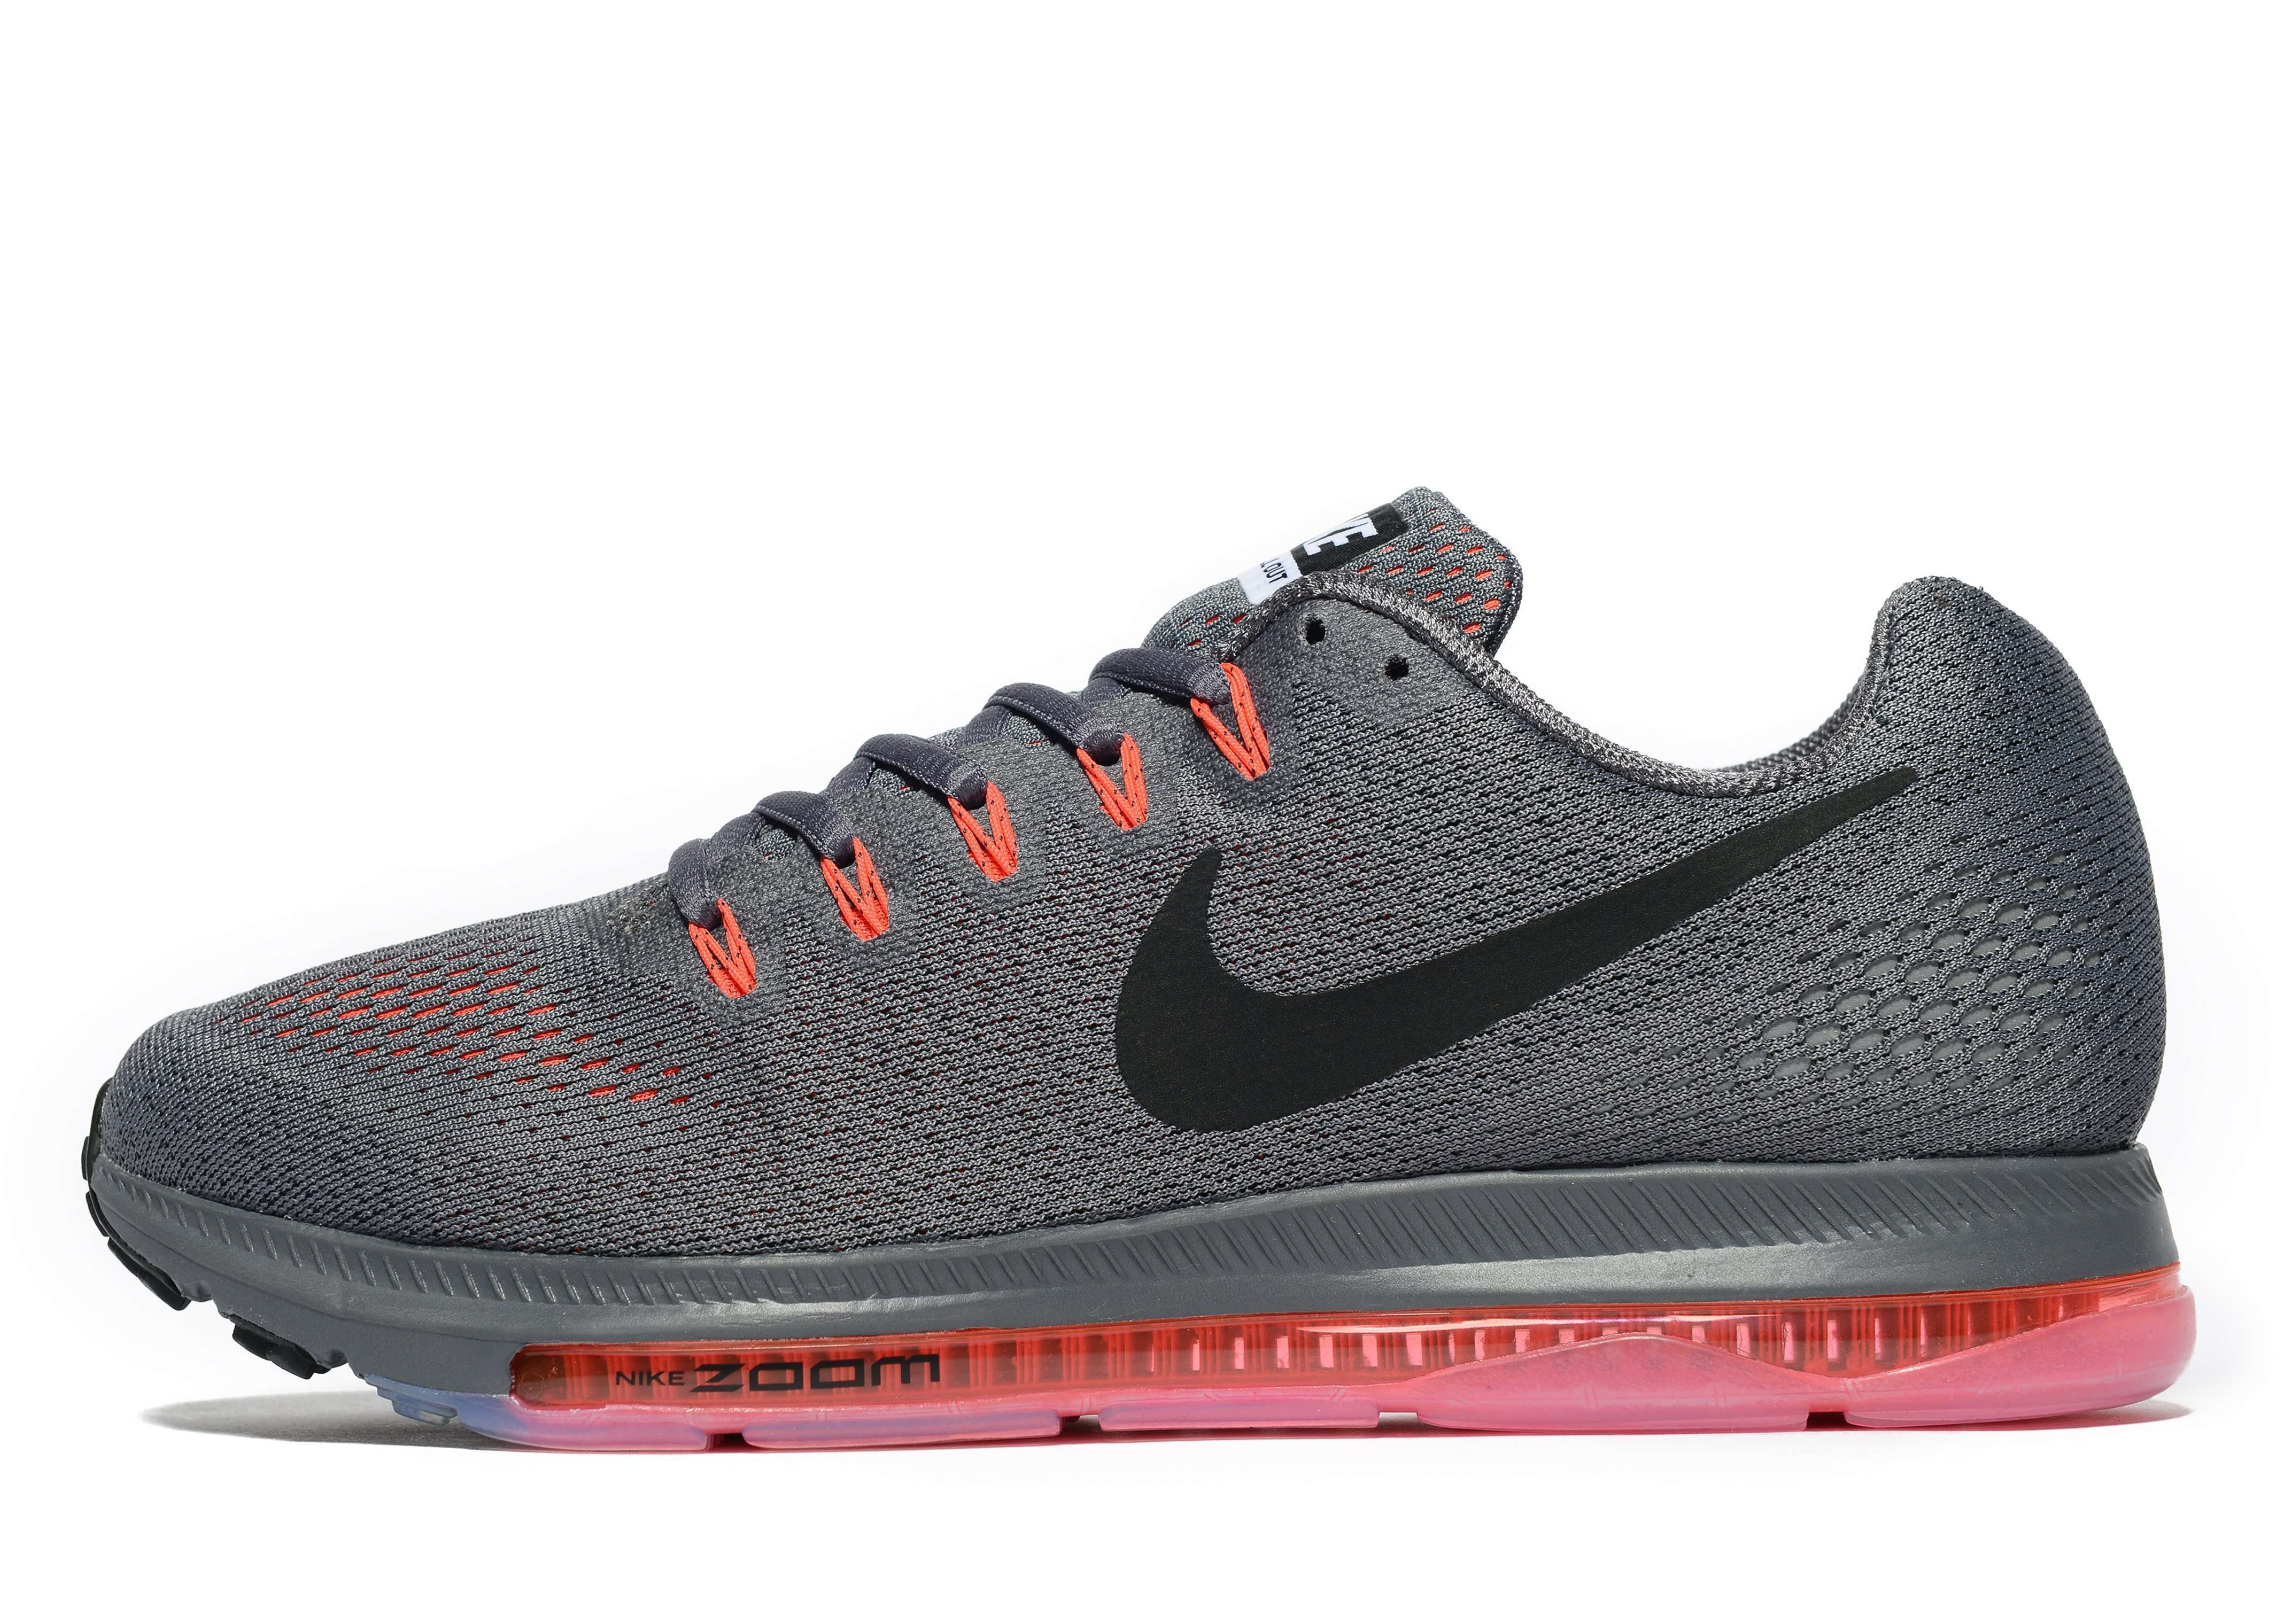 Nike Zoom All Out Low - Shop online for Nike Zoom All Out Low with JD  Sports, the UK's leading sports fashion retailer.